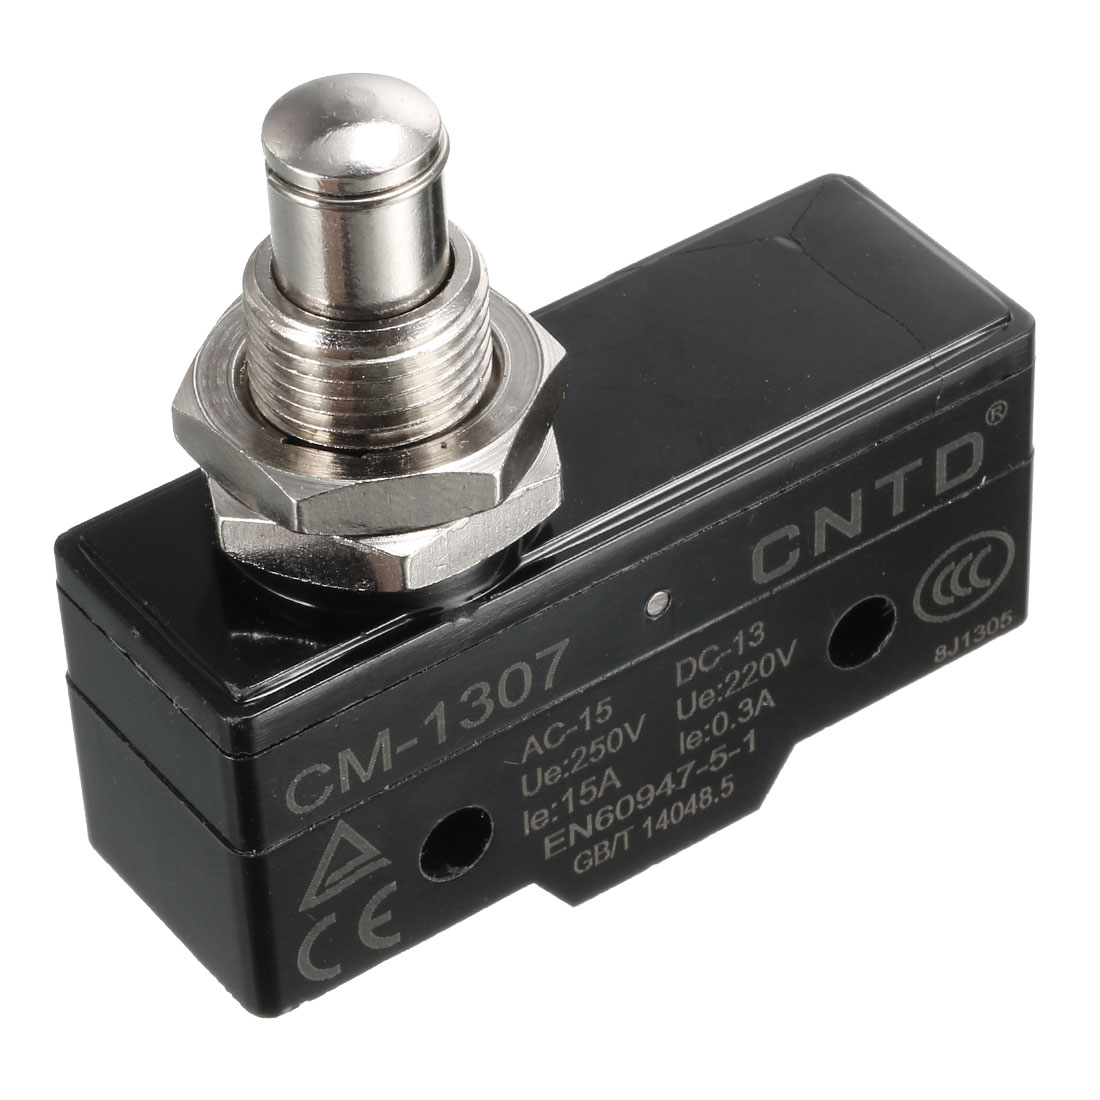 CM-1307 SPDT Momentary 3 Screw Terminals Panel Mounting Roller Plunger Basic Limit Switch Control